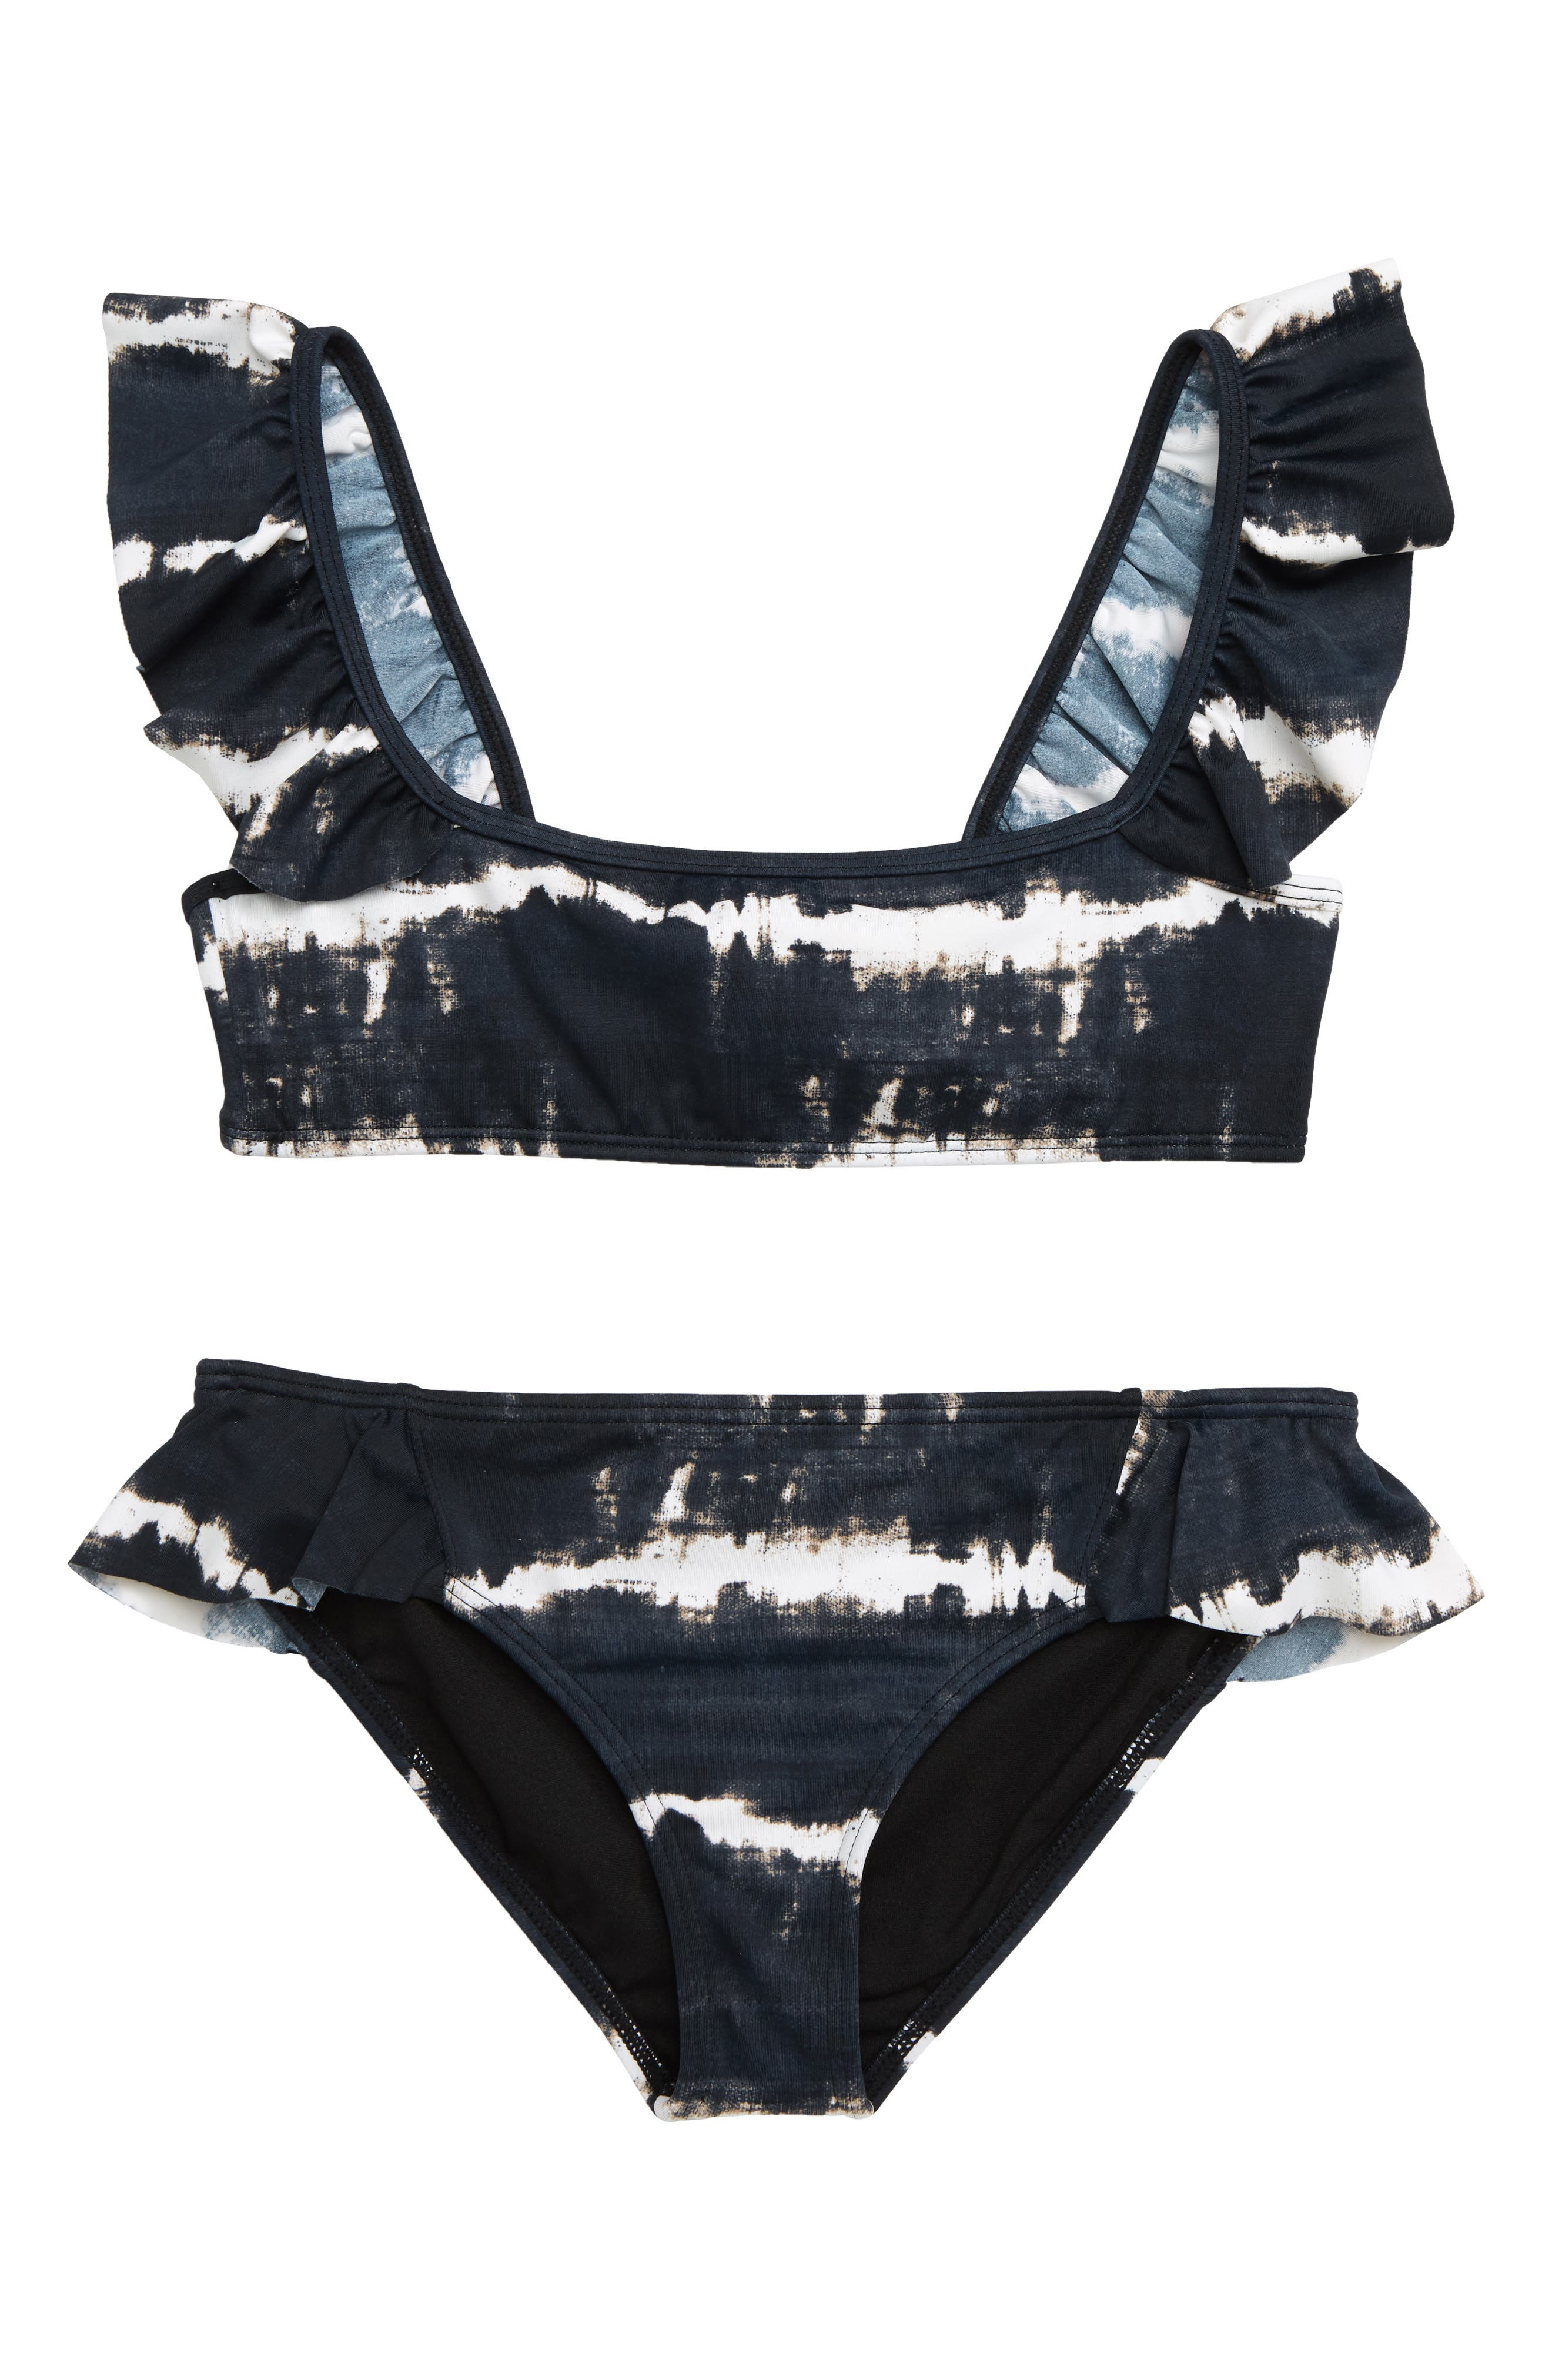 BILLABONG Washed Out Ruffle Two-Piece Swimsuit, Main, color, 001